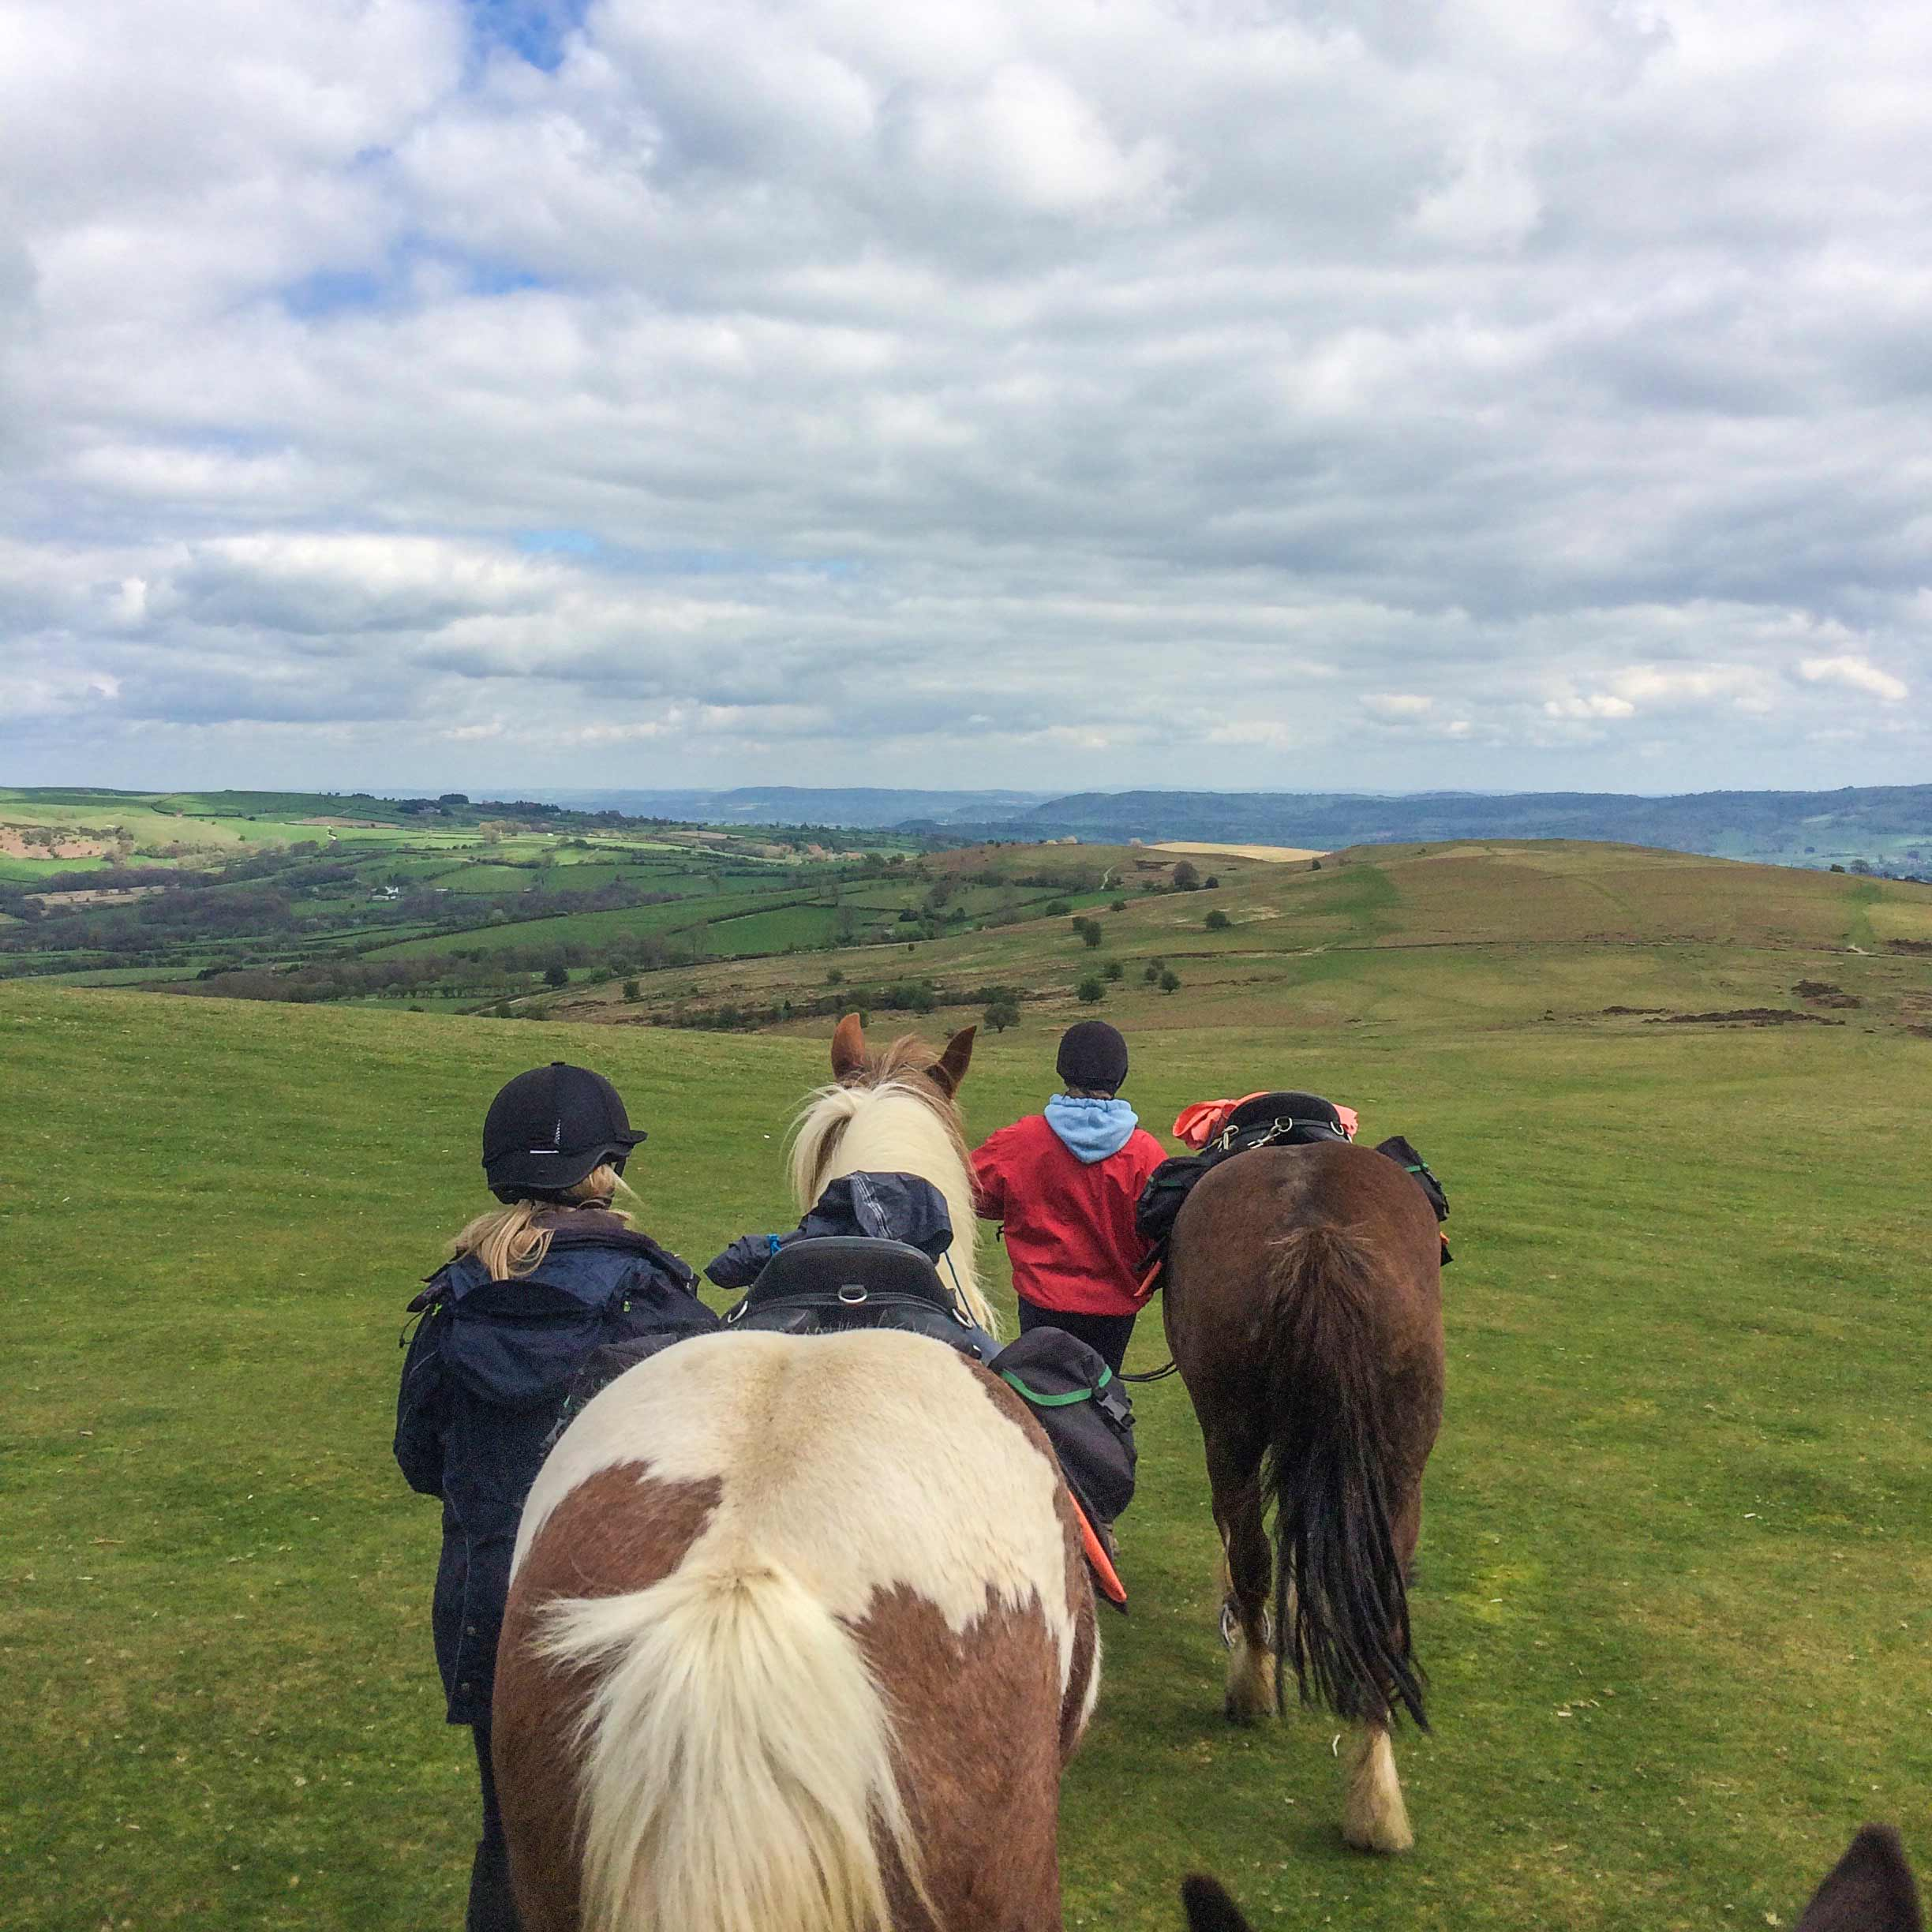 Riders have a final leg stretch on the Begwns before returning to Freerein HQ